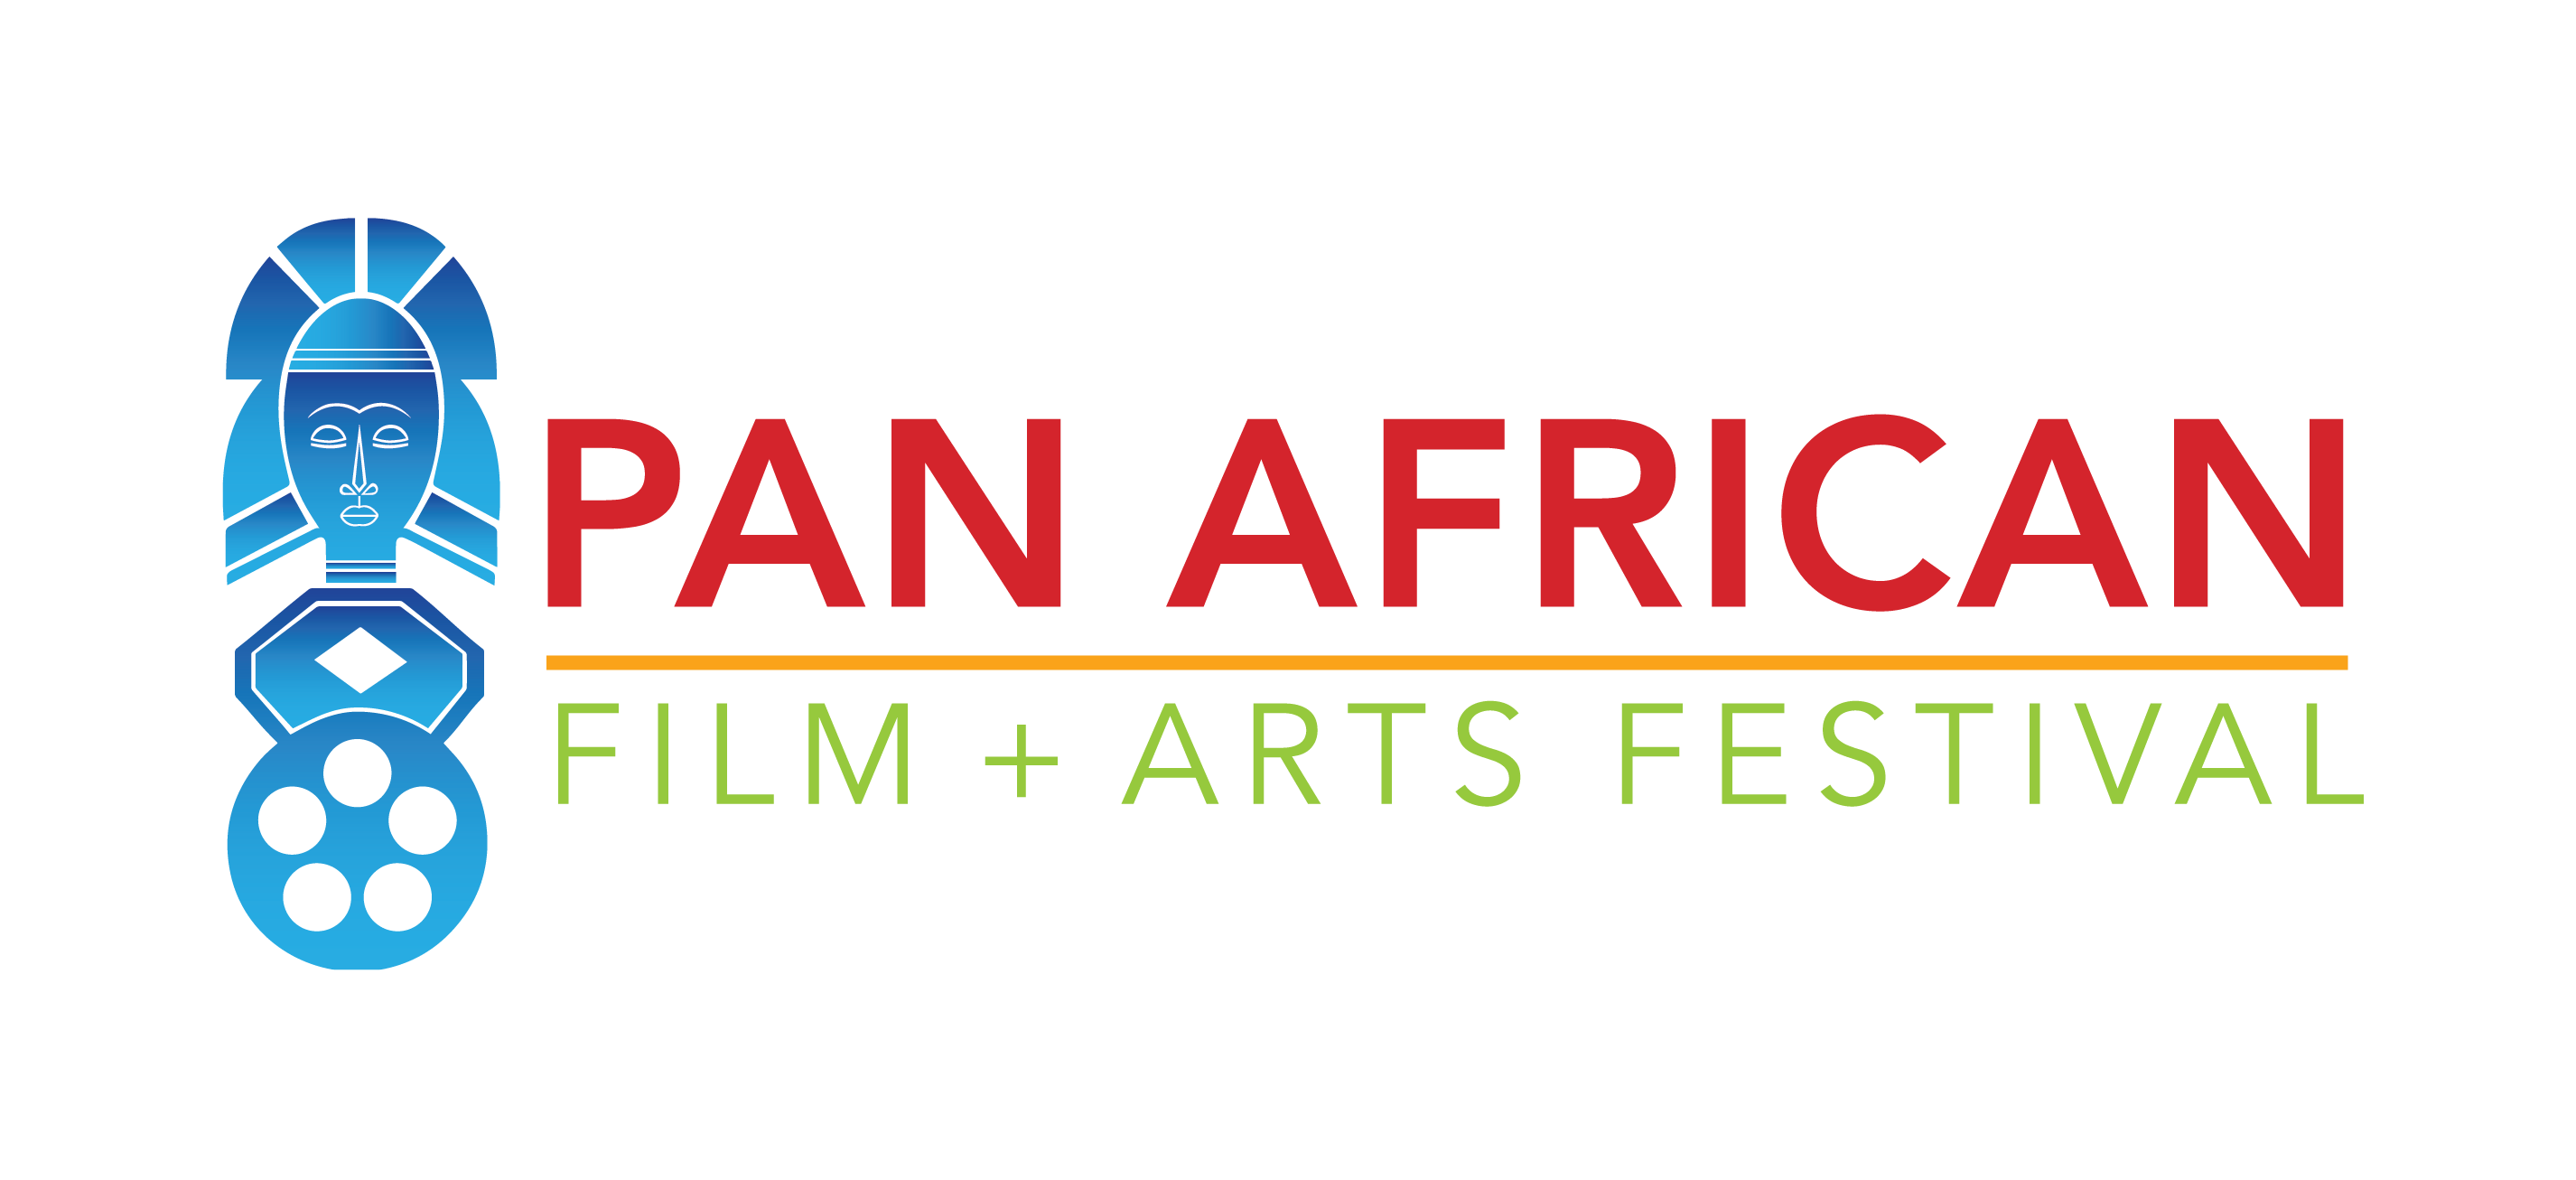 Pan African Film Festival Announces Virtual Lineup for 2021